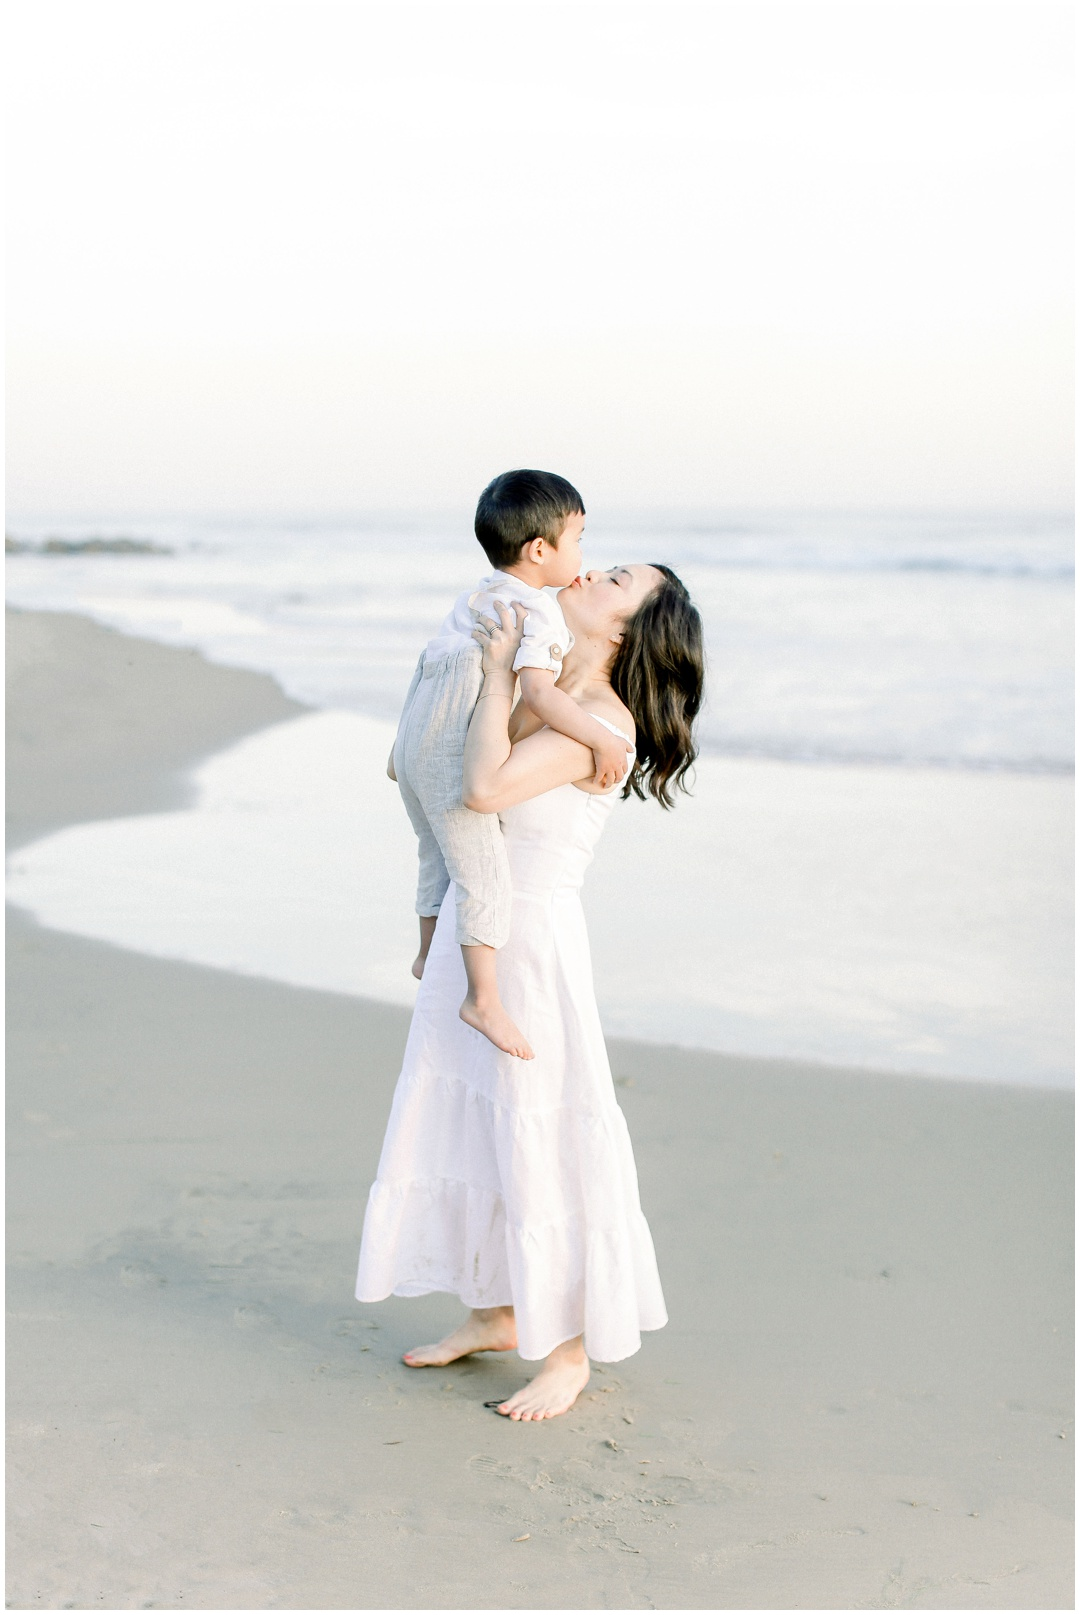 Newport_Beach_Newborn_Light_Airy_Natural_Photographer_Newport_Beach_Photographer_Orange_County_Family_Photographer_Cori_Kleckner_Photography_Huntington_Beach_Photographer_Family_OC_Newborn_Christine_Cho_Family_session__3393.jpg